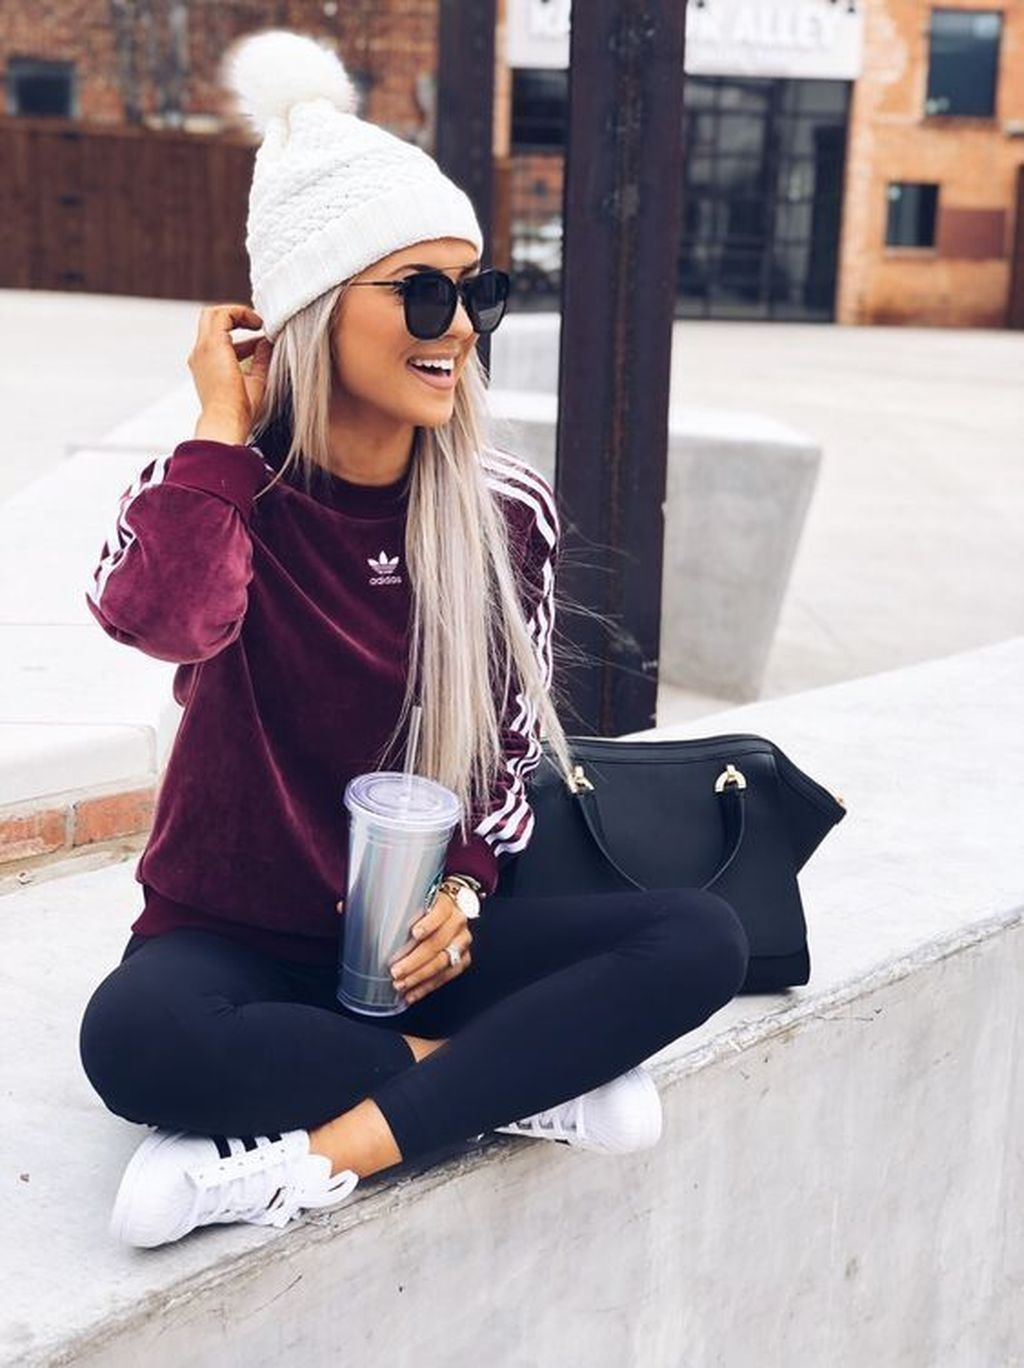 30+ Hottest Women Winter Outfits Ideas To Copy In 2019 #casualfalloutfits